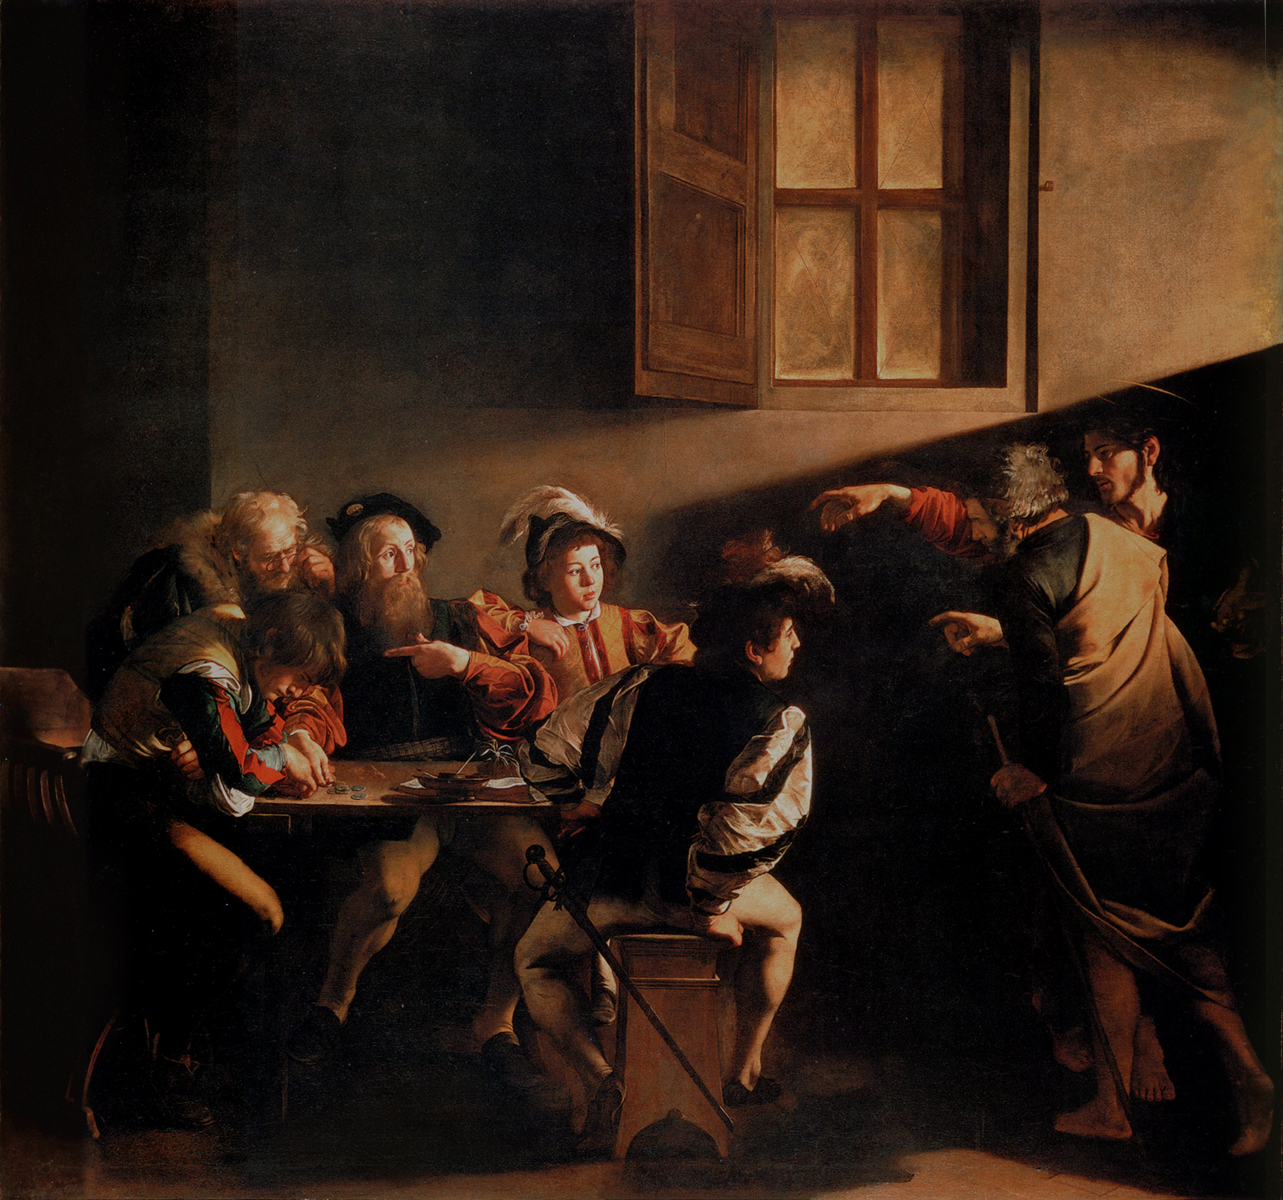 The Calling of Saint Matthew By Caravaggio - SUNY College at Oneonta, NY - via Wikimedia Commons